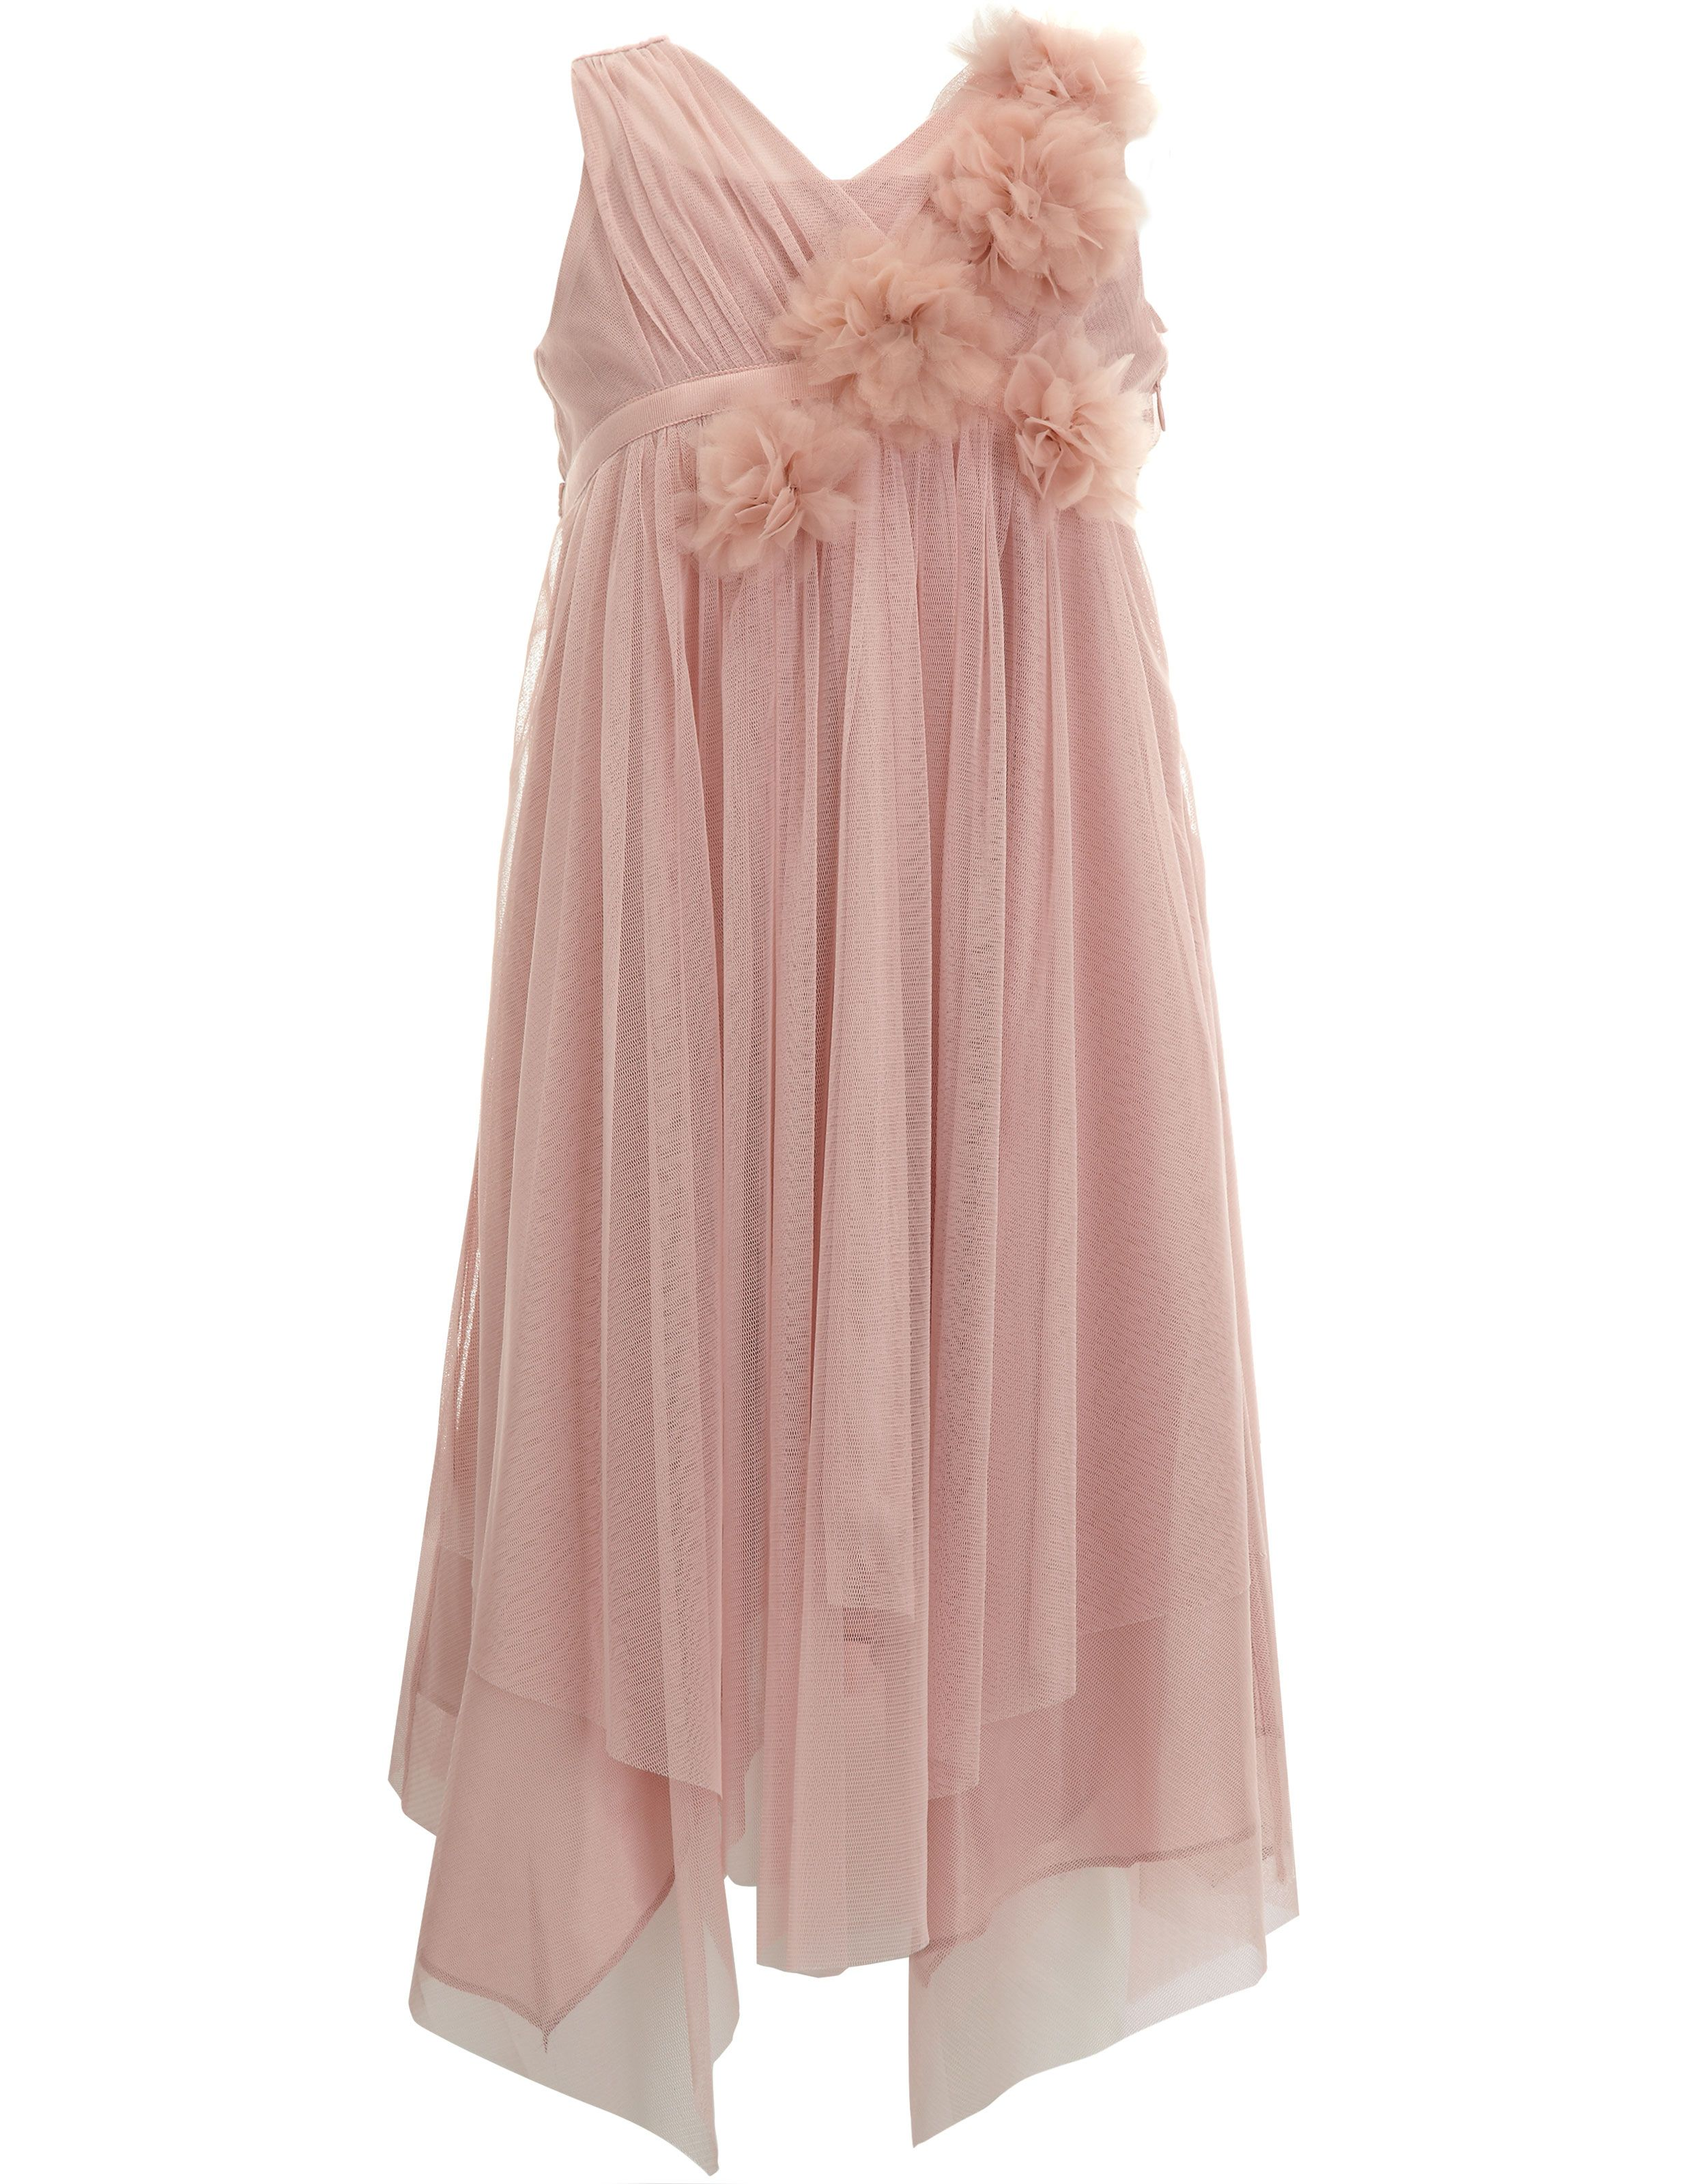 Dusky Pink Dress With Corsage Flower Detail Art Deco Wedding